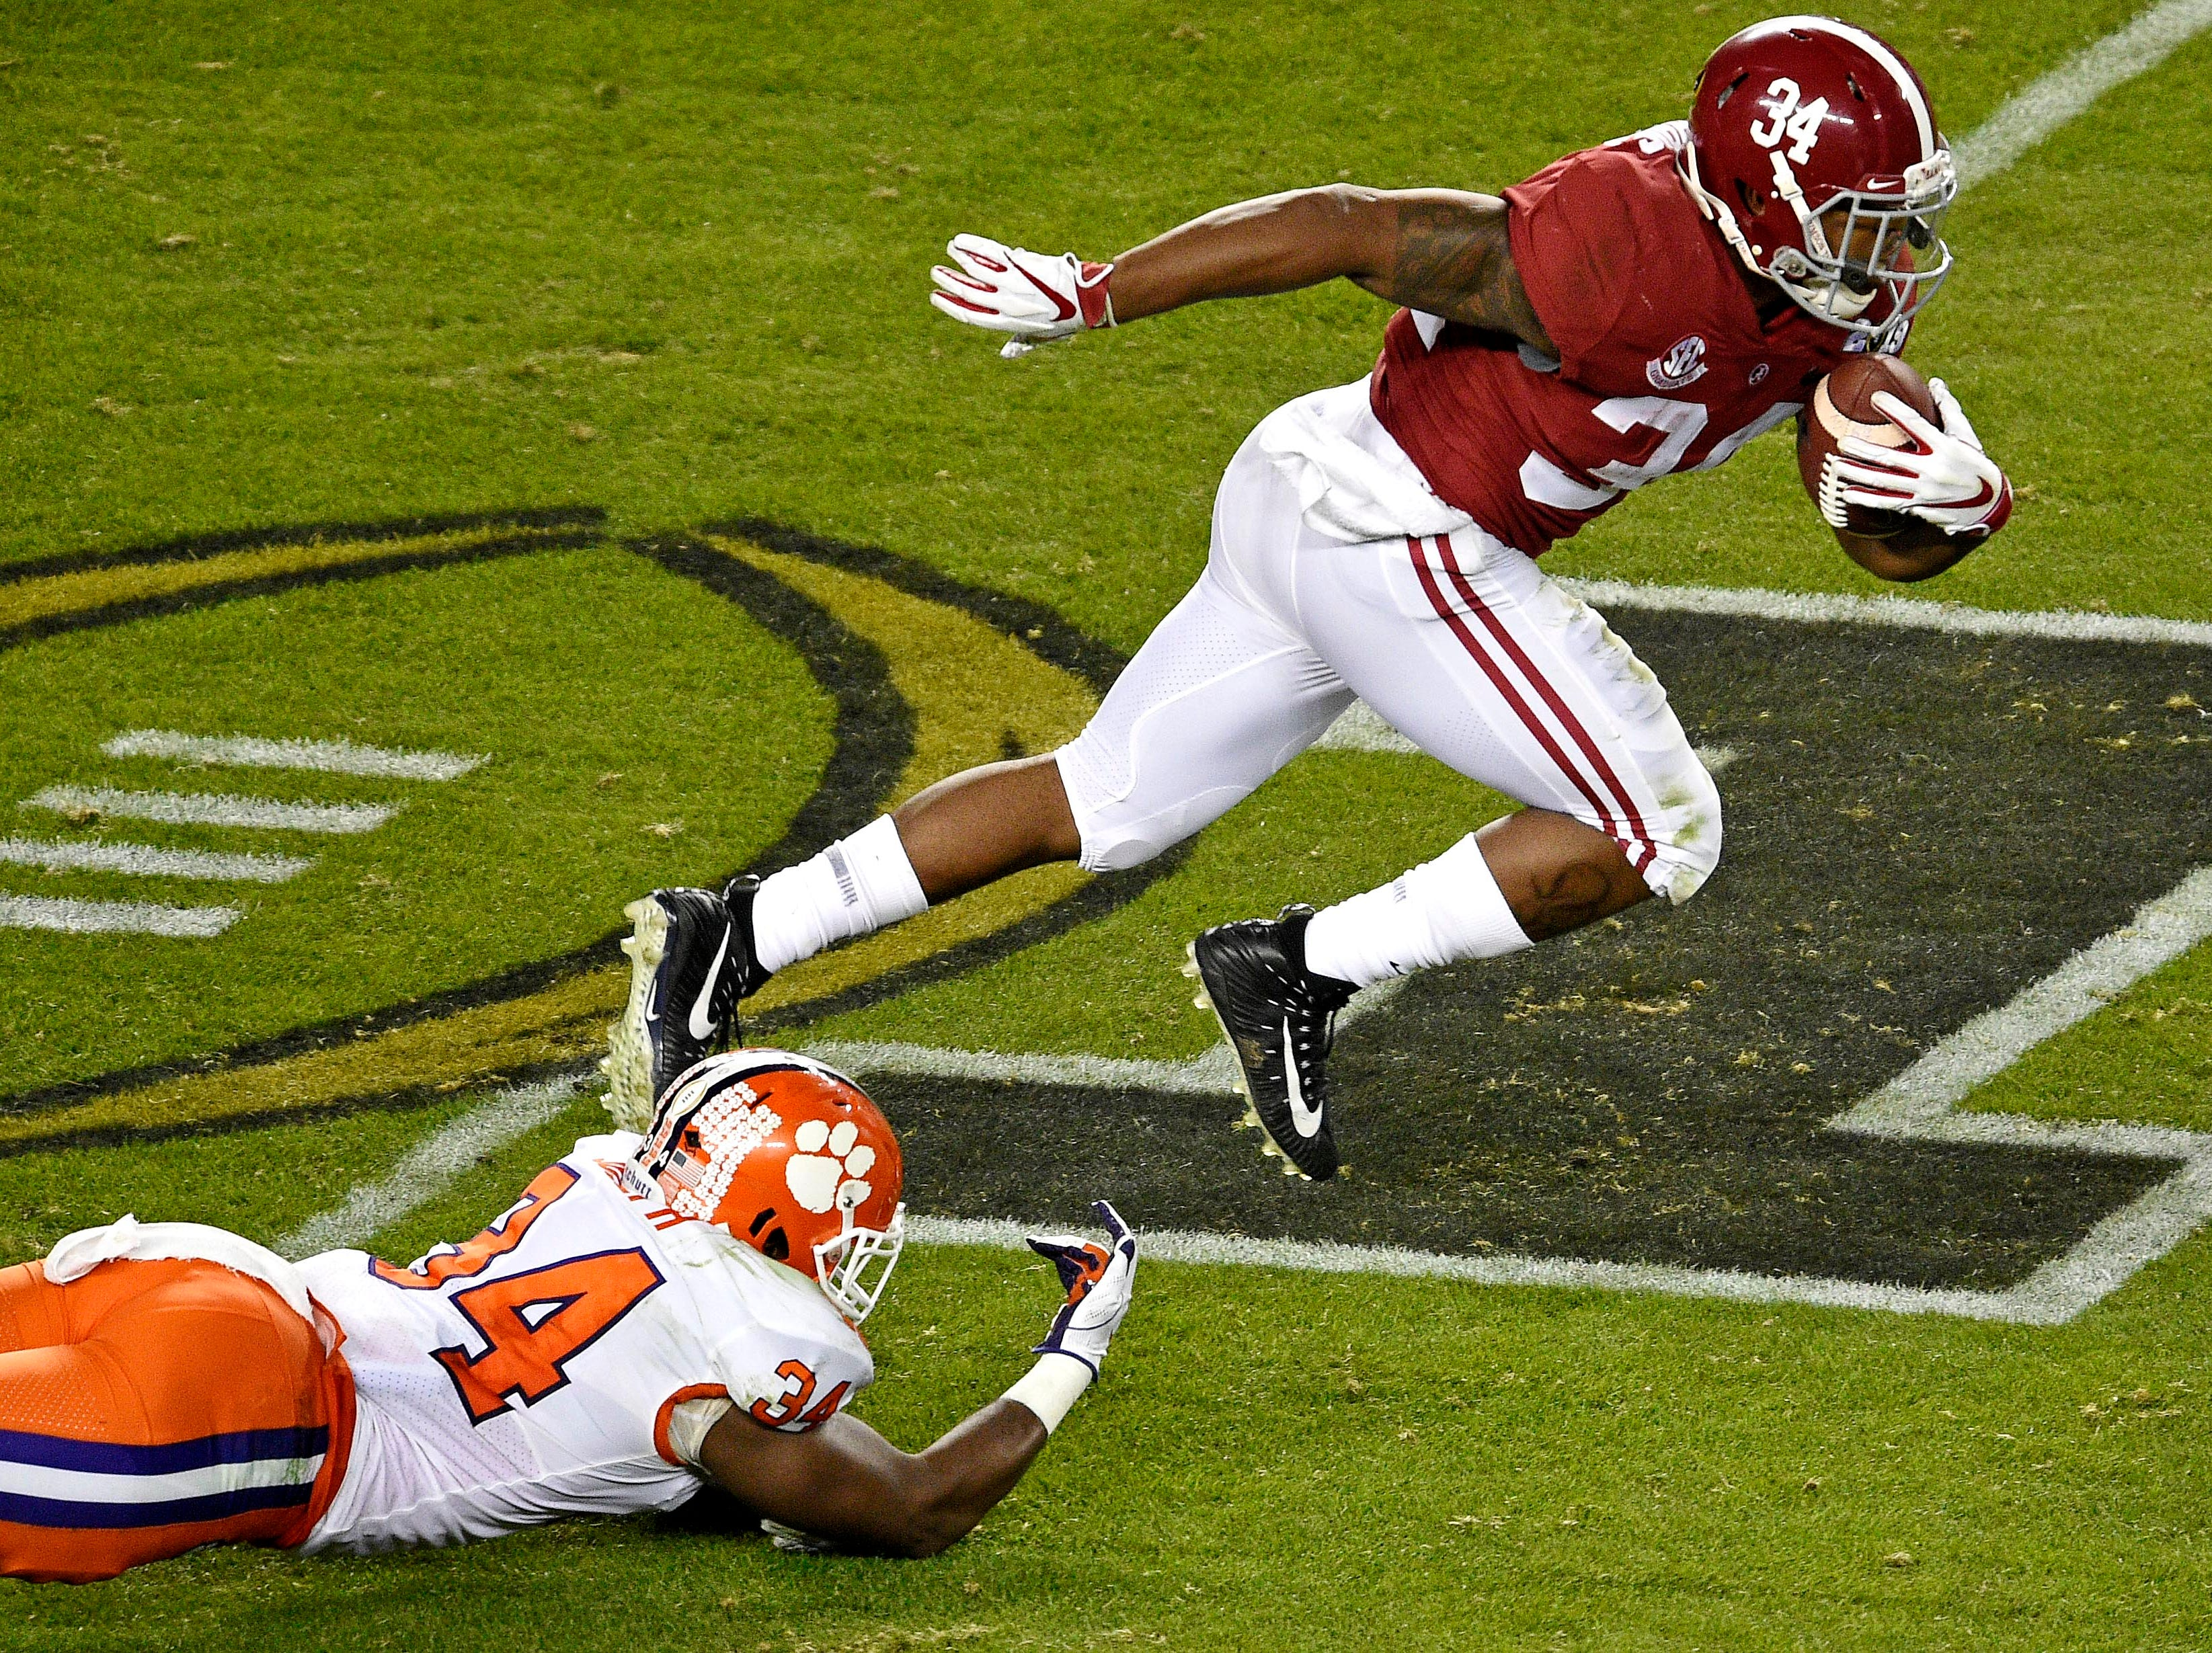 Jan 7, 2019; Santa Clara, CA, USA; Alabama Crimson Tide running back Damien Harris (34) runs the ball against Clemson Tigers linebacker Kendall Joseph (34) during the third quarter during the 2019 College Football Playoff Championship game at Levi's Stadium. Mandatory Credit: Kelvin Kuo-USA TODAY Sports